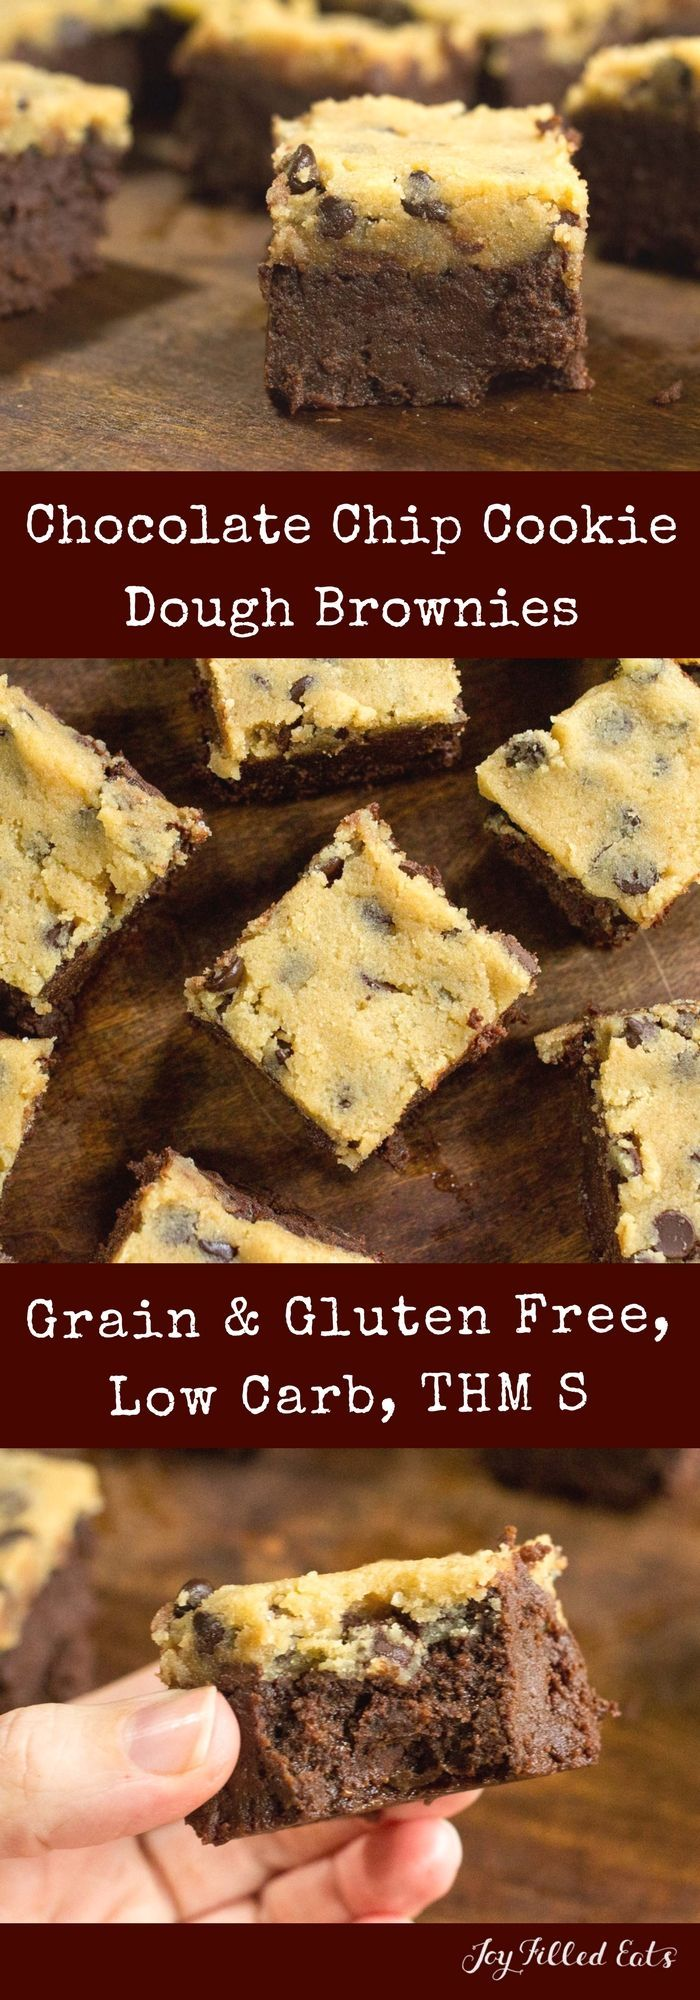 Chocolate Chip Cookie Dough Brownies - Low Carb, Grain/Gluten/Sugar-Free, THM S     via @joyfilledeats